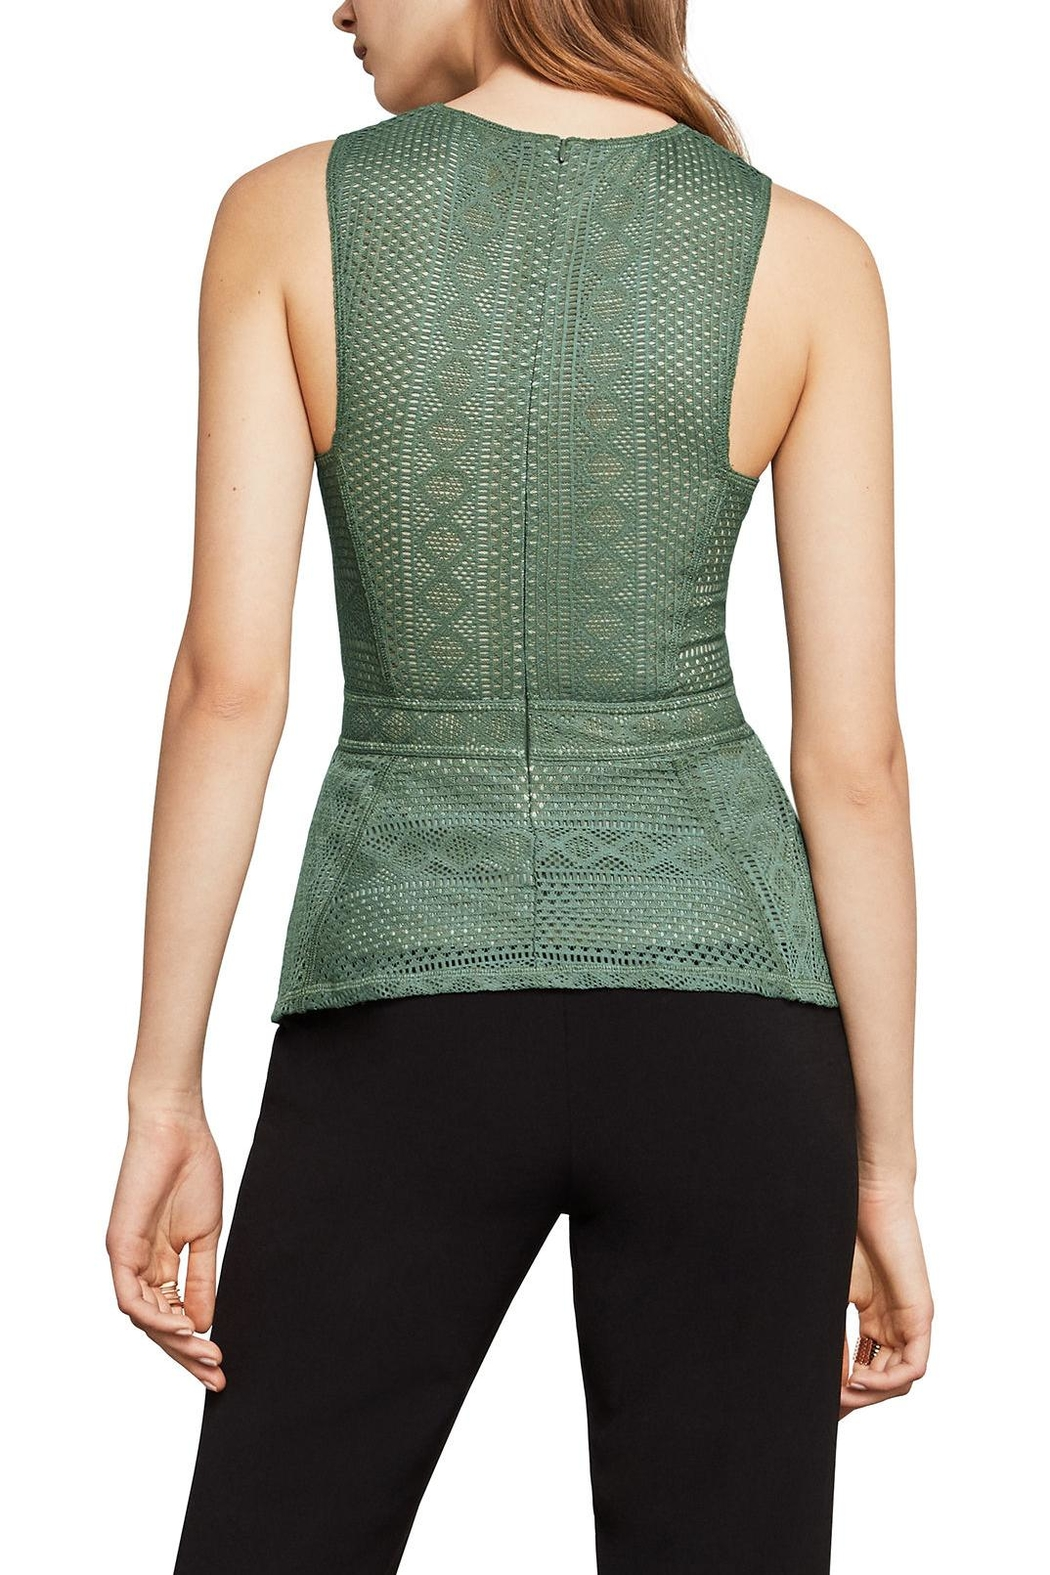 BCBG Max Azria Lace Peplum Top - Front Full Image